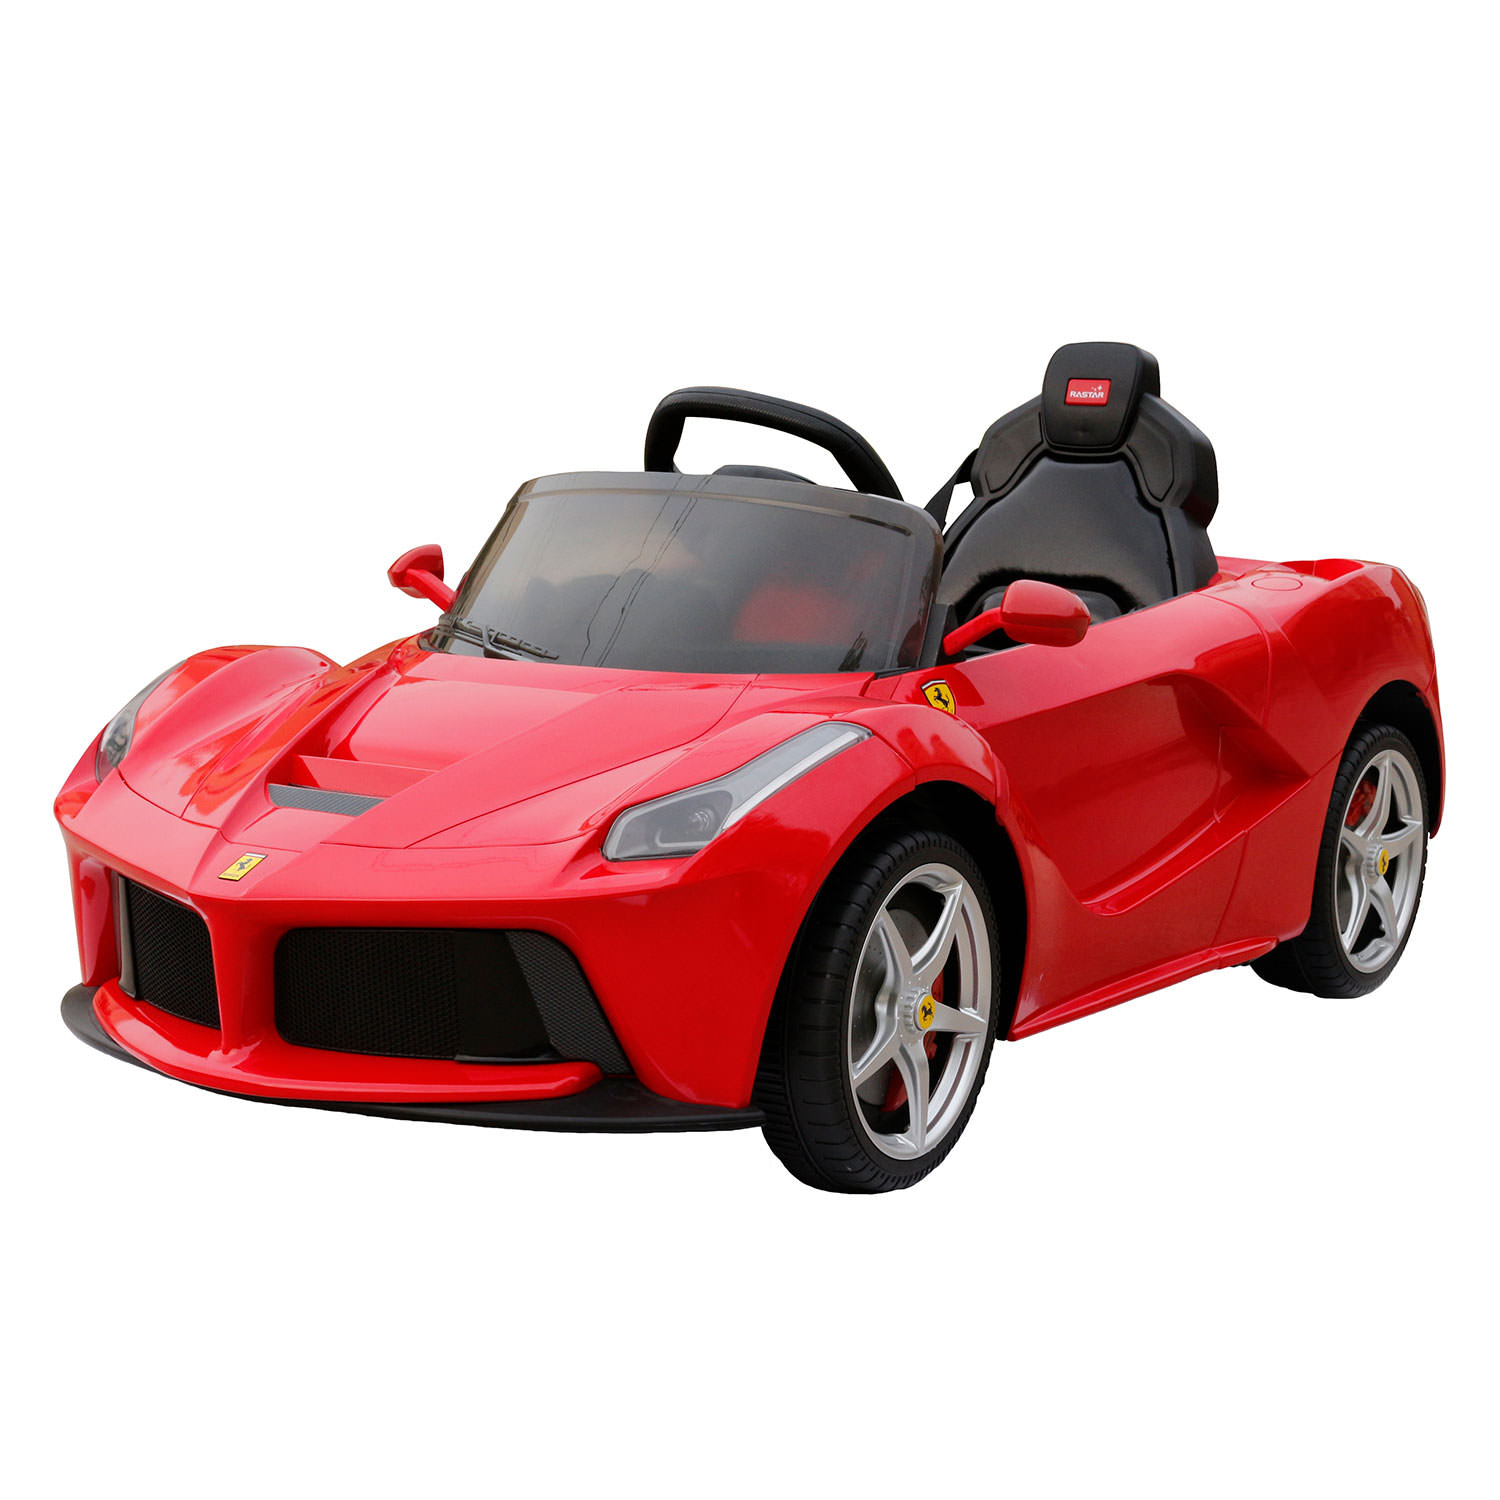 Rastar 82700 Ferrari 12V LaFerrari Electric RC Ride On Toy